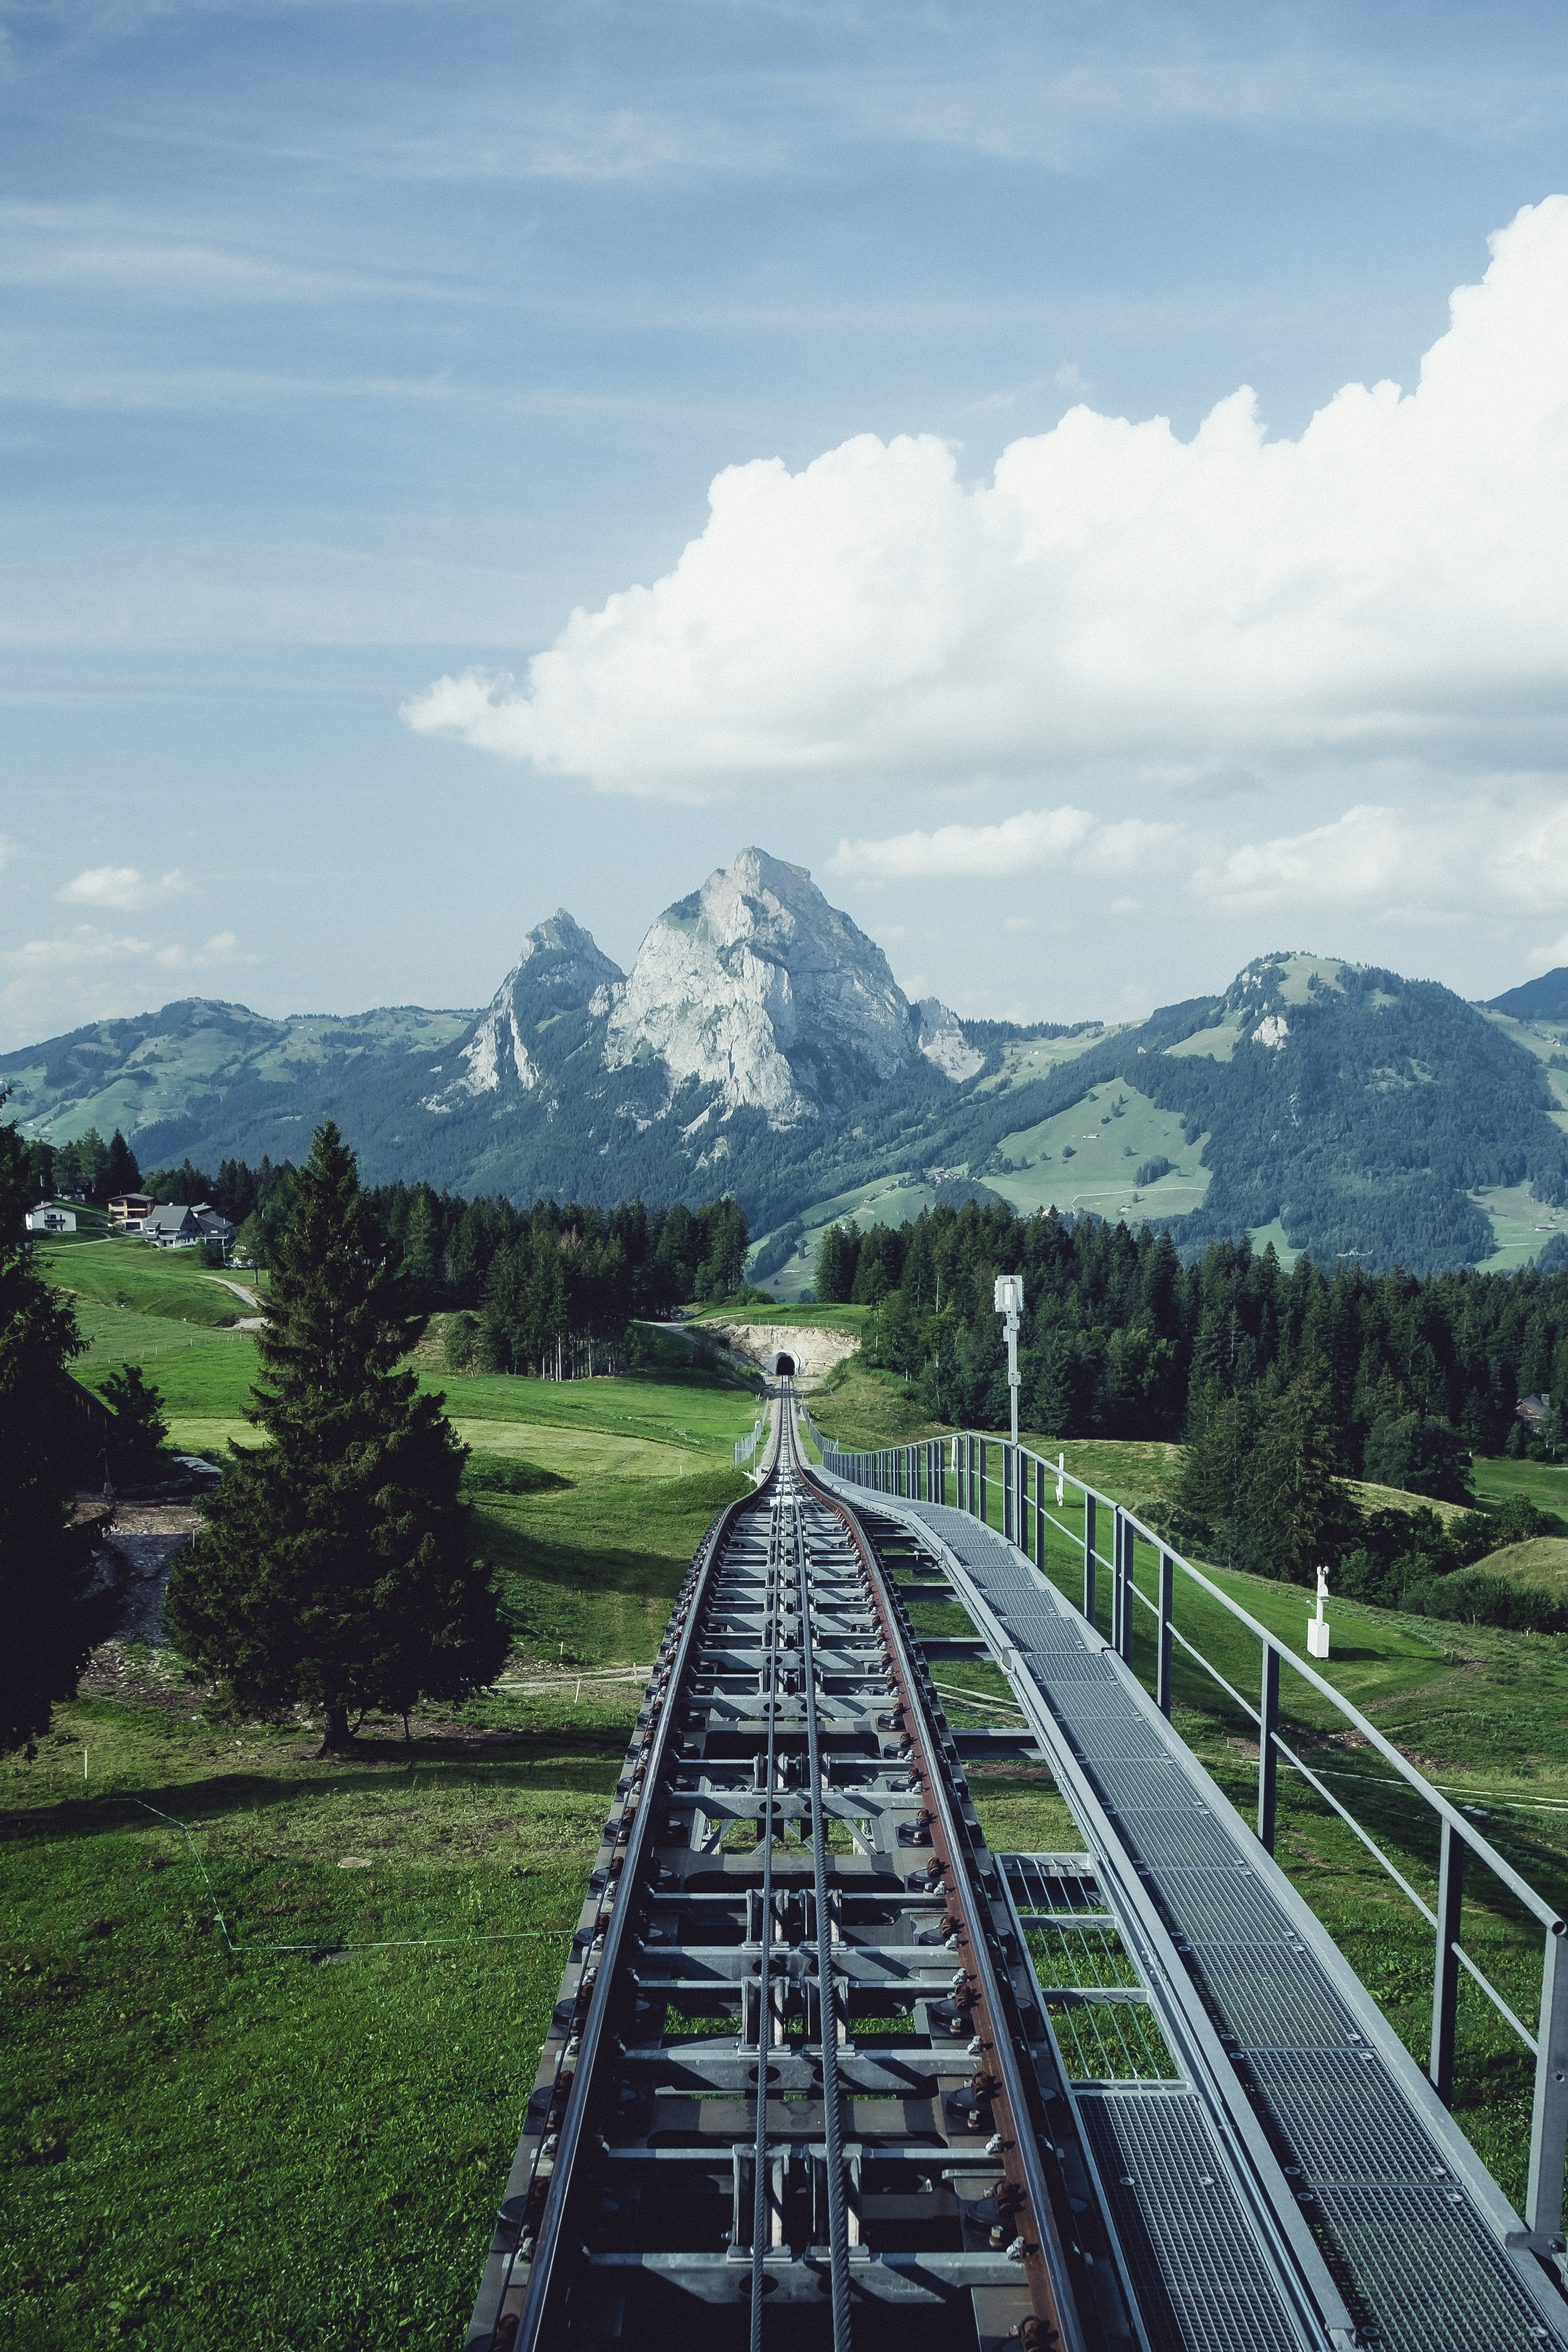 57086 download wallpaper Railway, Rails, Nature, Mountains, Landscape screensavers and pictures for free